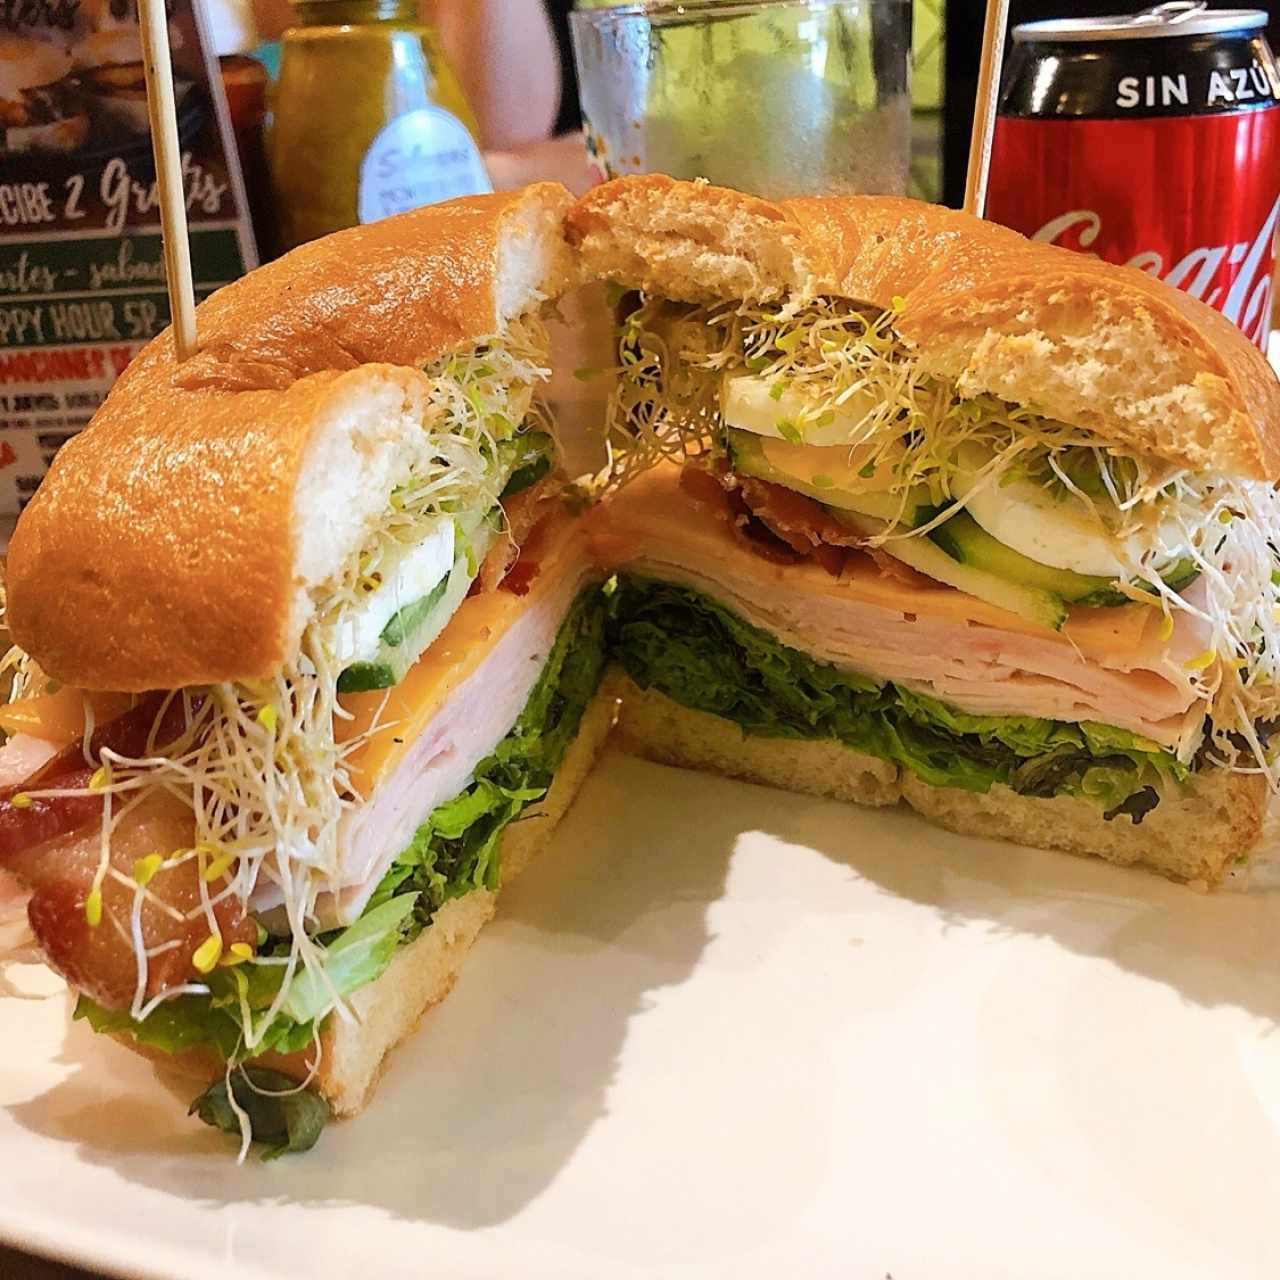 Sara's Turkey Club (Amazing)